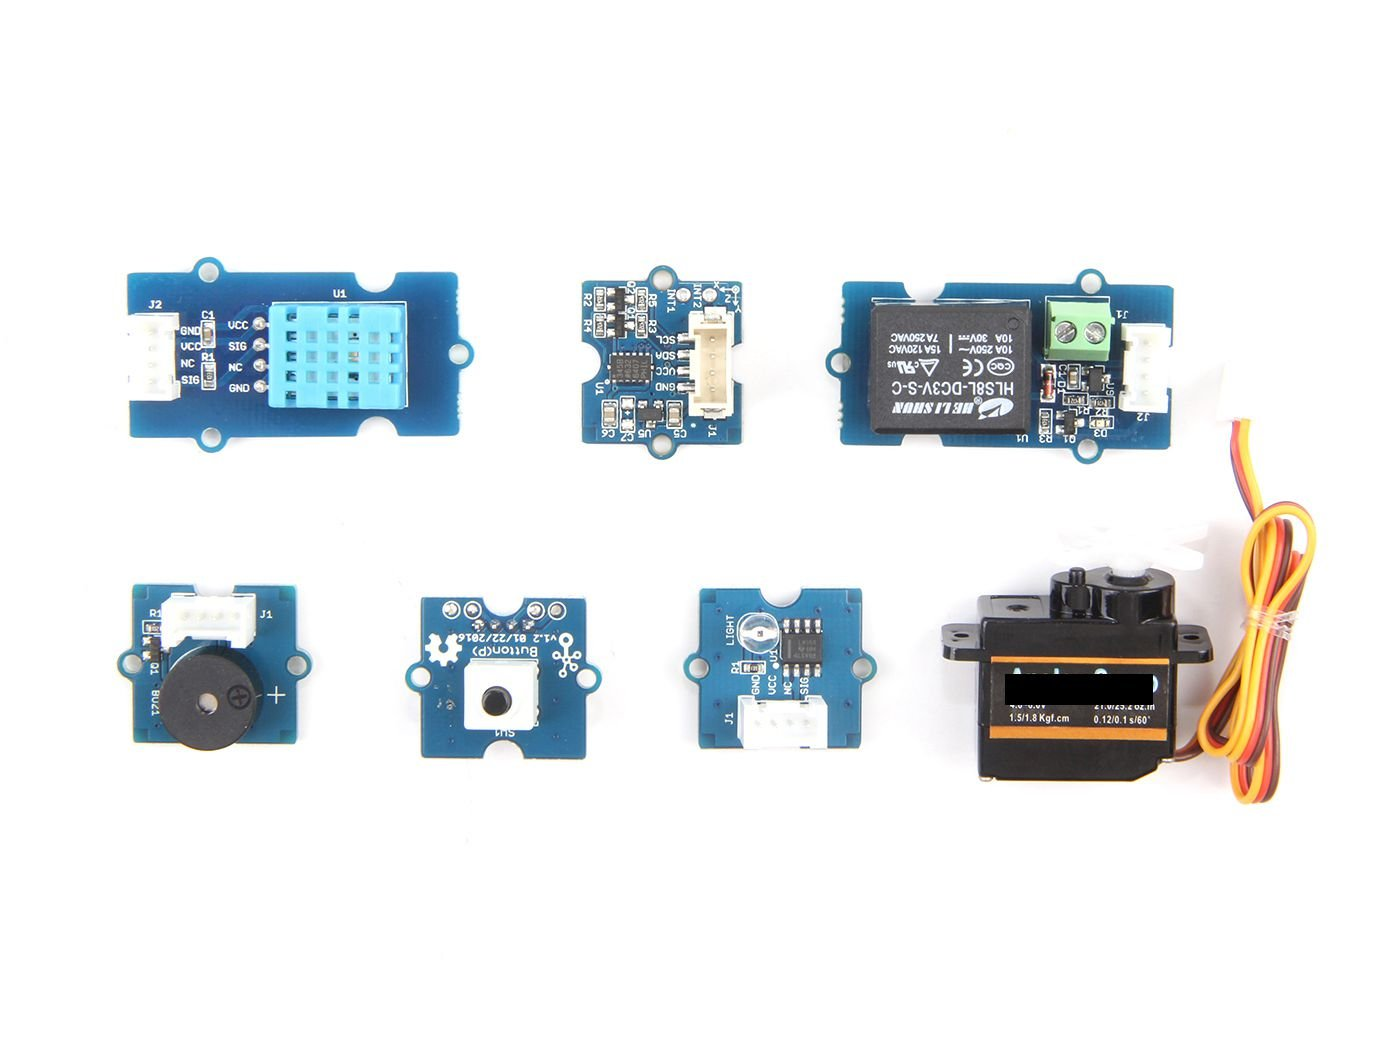 Grove Starter Kit for Wio LTE,Contain light sensor and temp&humi sensor,3-Axis Digital Accelerometer(±16g),Relay,Buzzer,Button(P),Servo,With all the features of learning and rapid prototyping